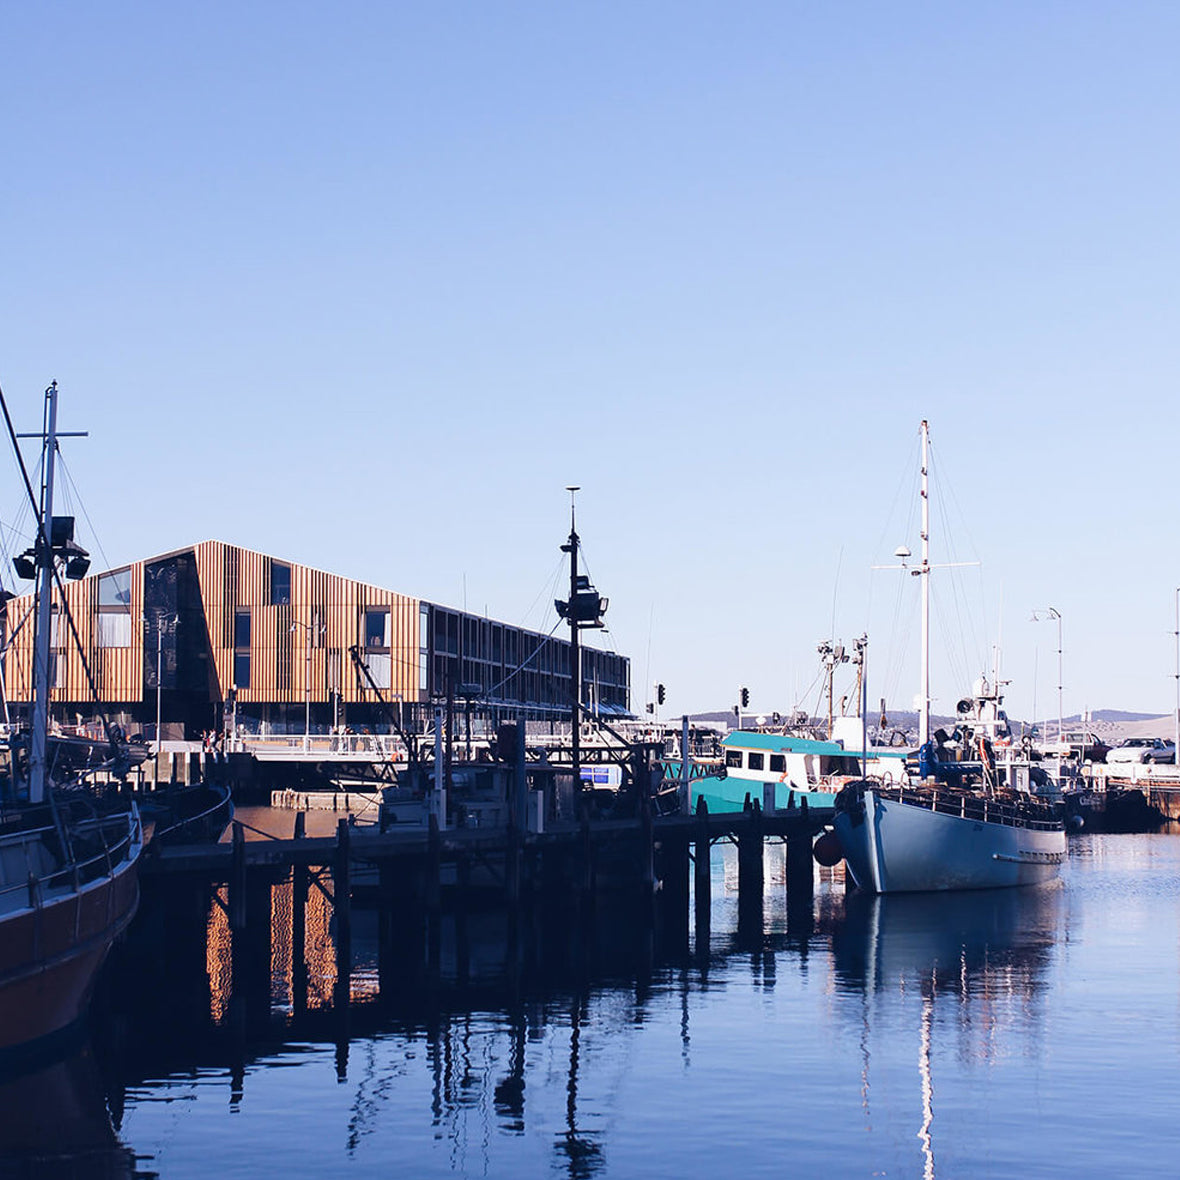 A local's guide to Hobart